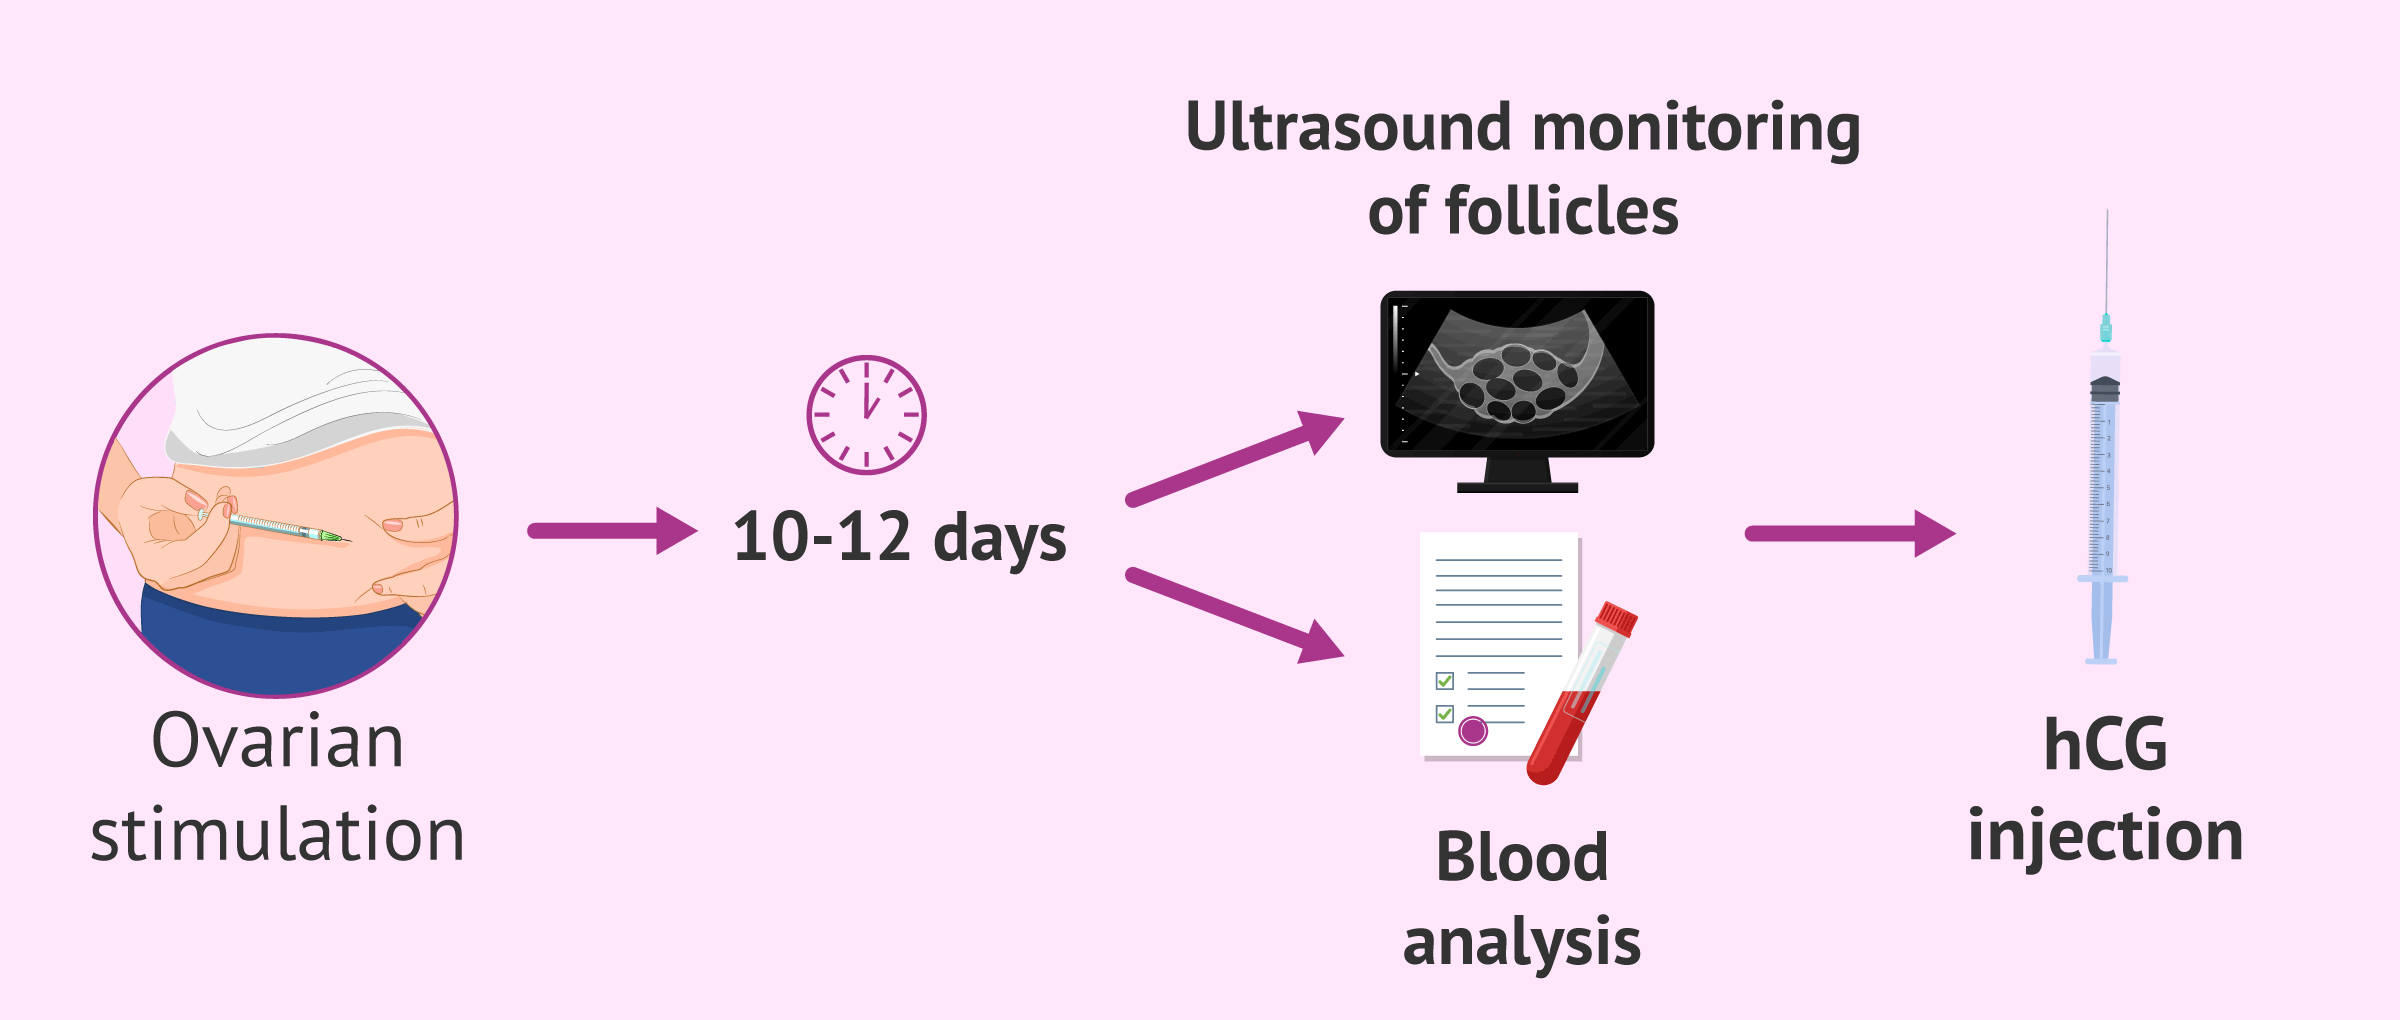 Scheduling the ovum pick-up